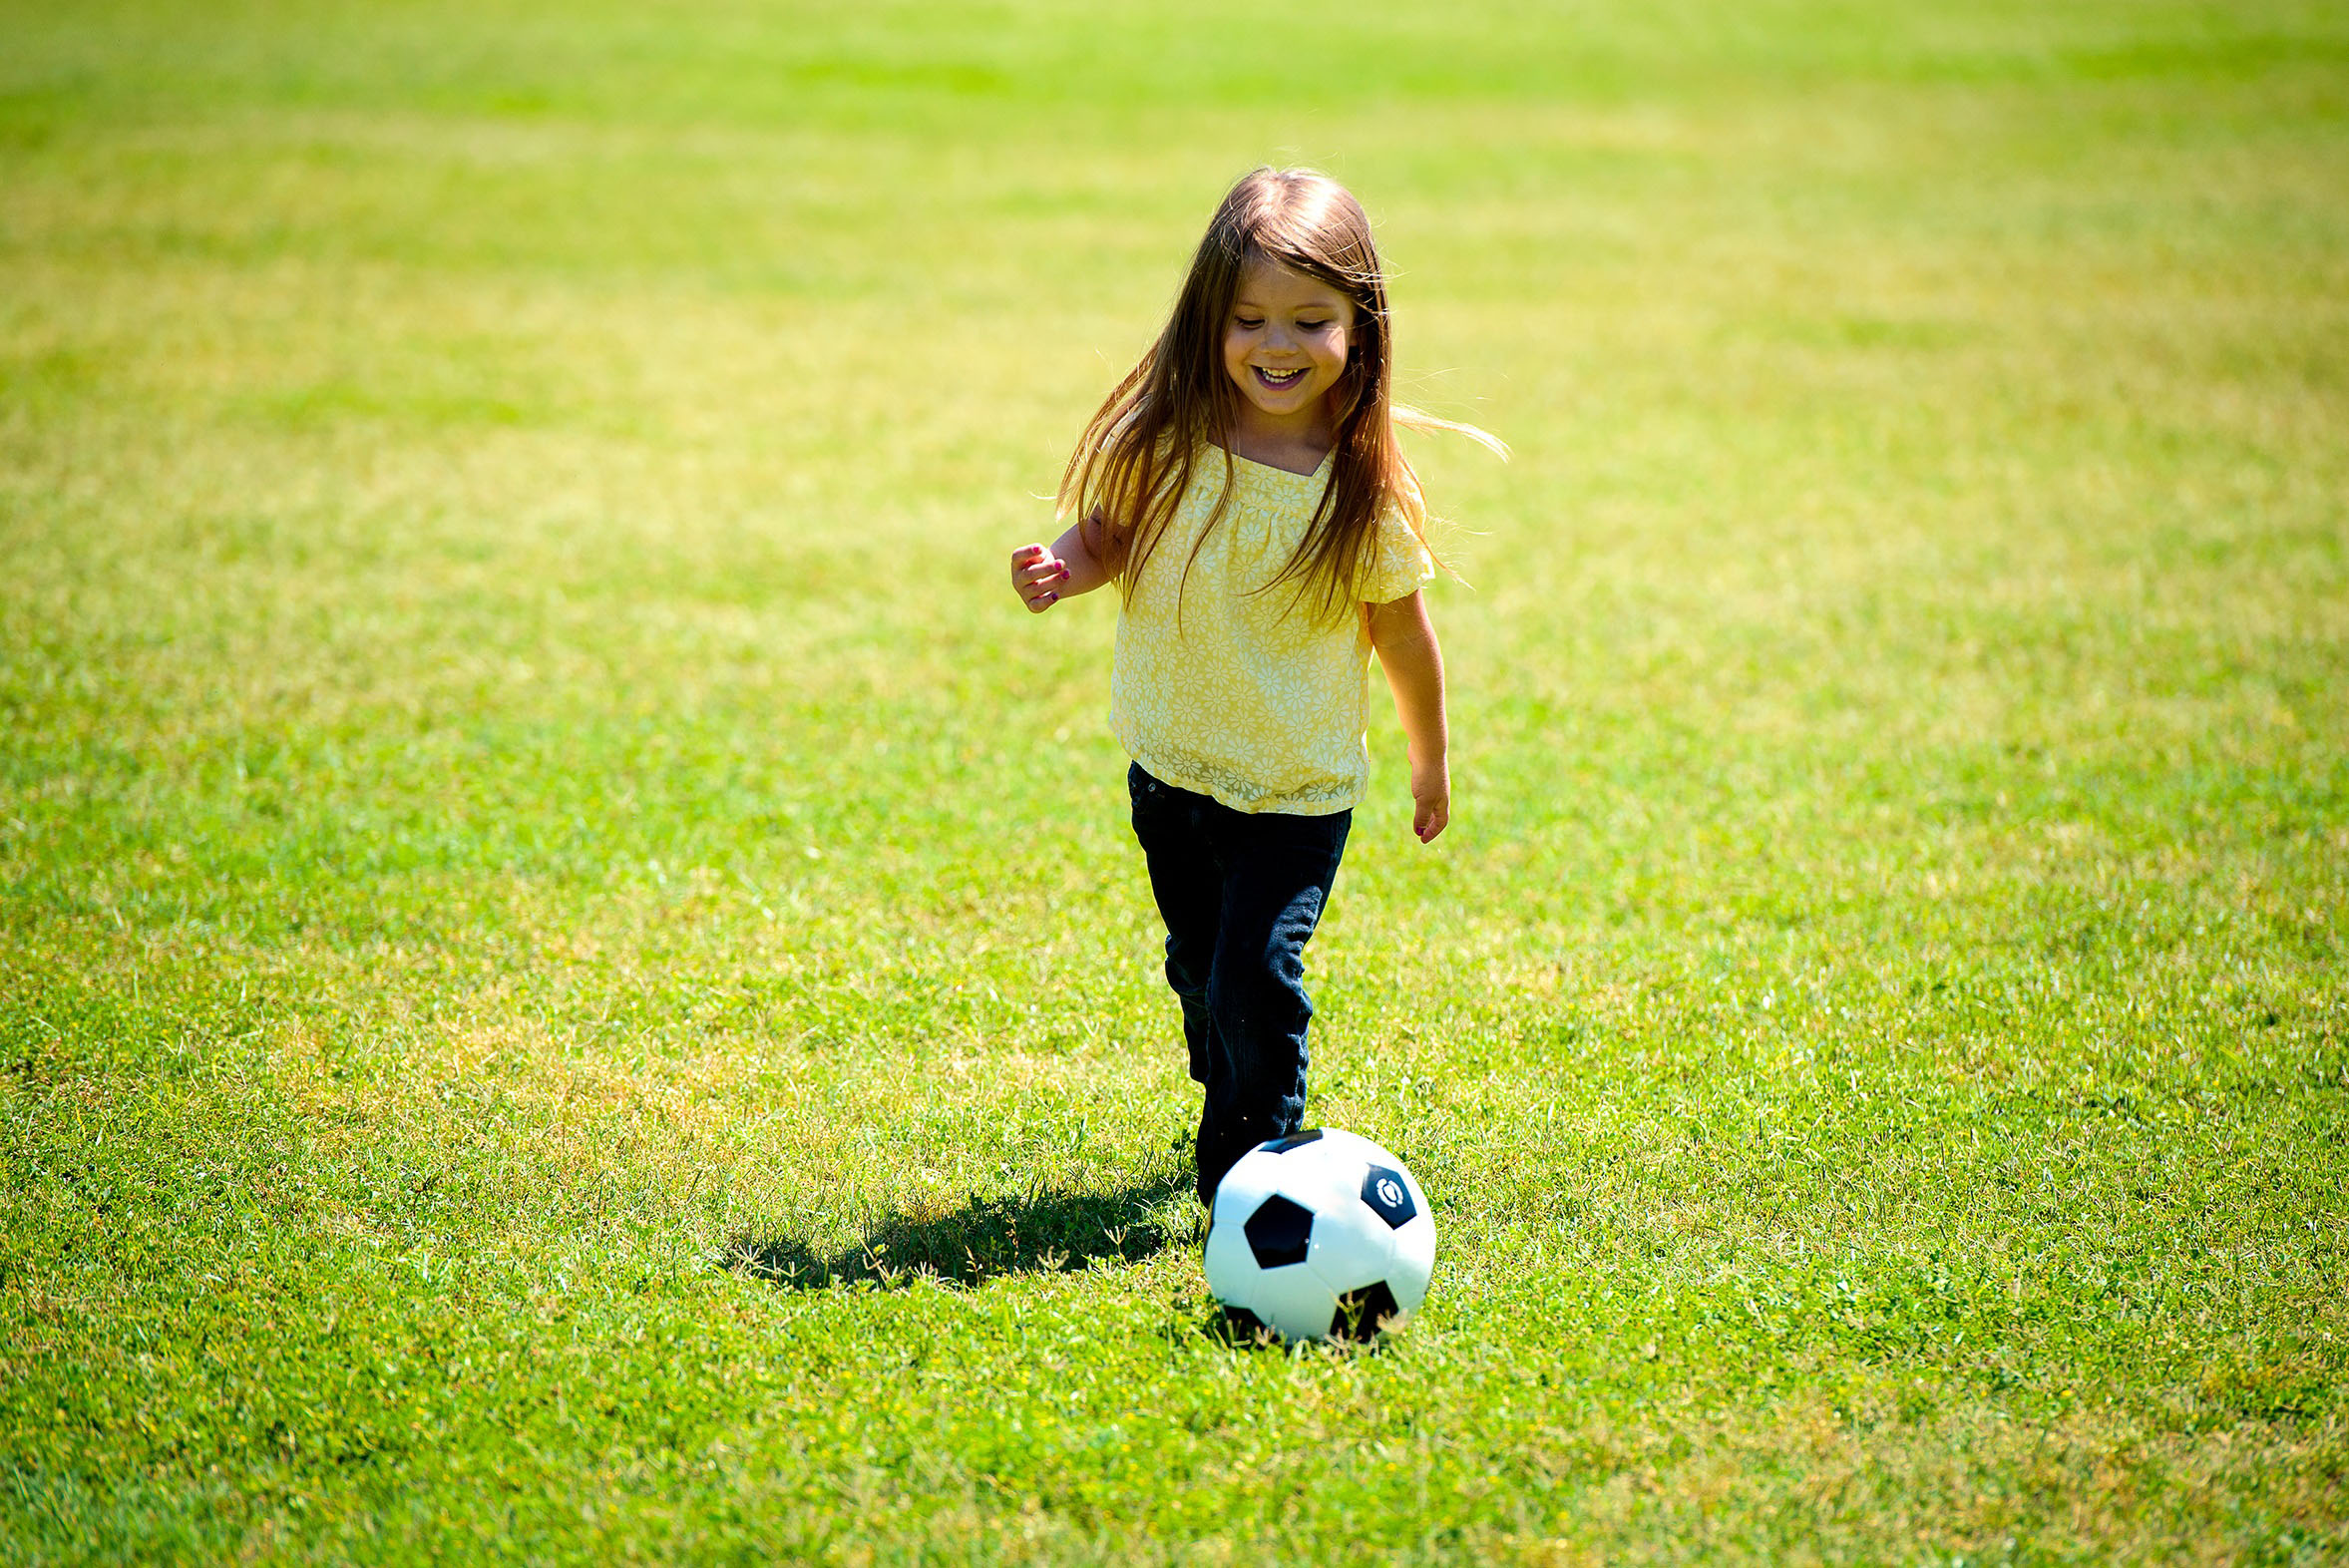 Cute young girl playing soccer picture women over movies